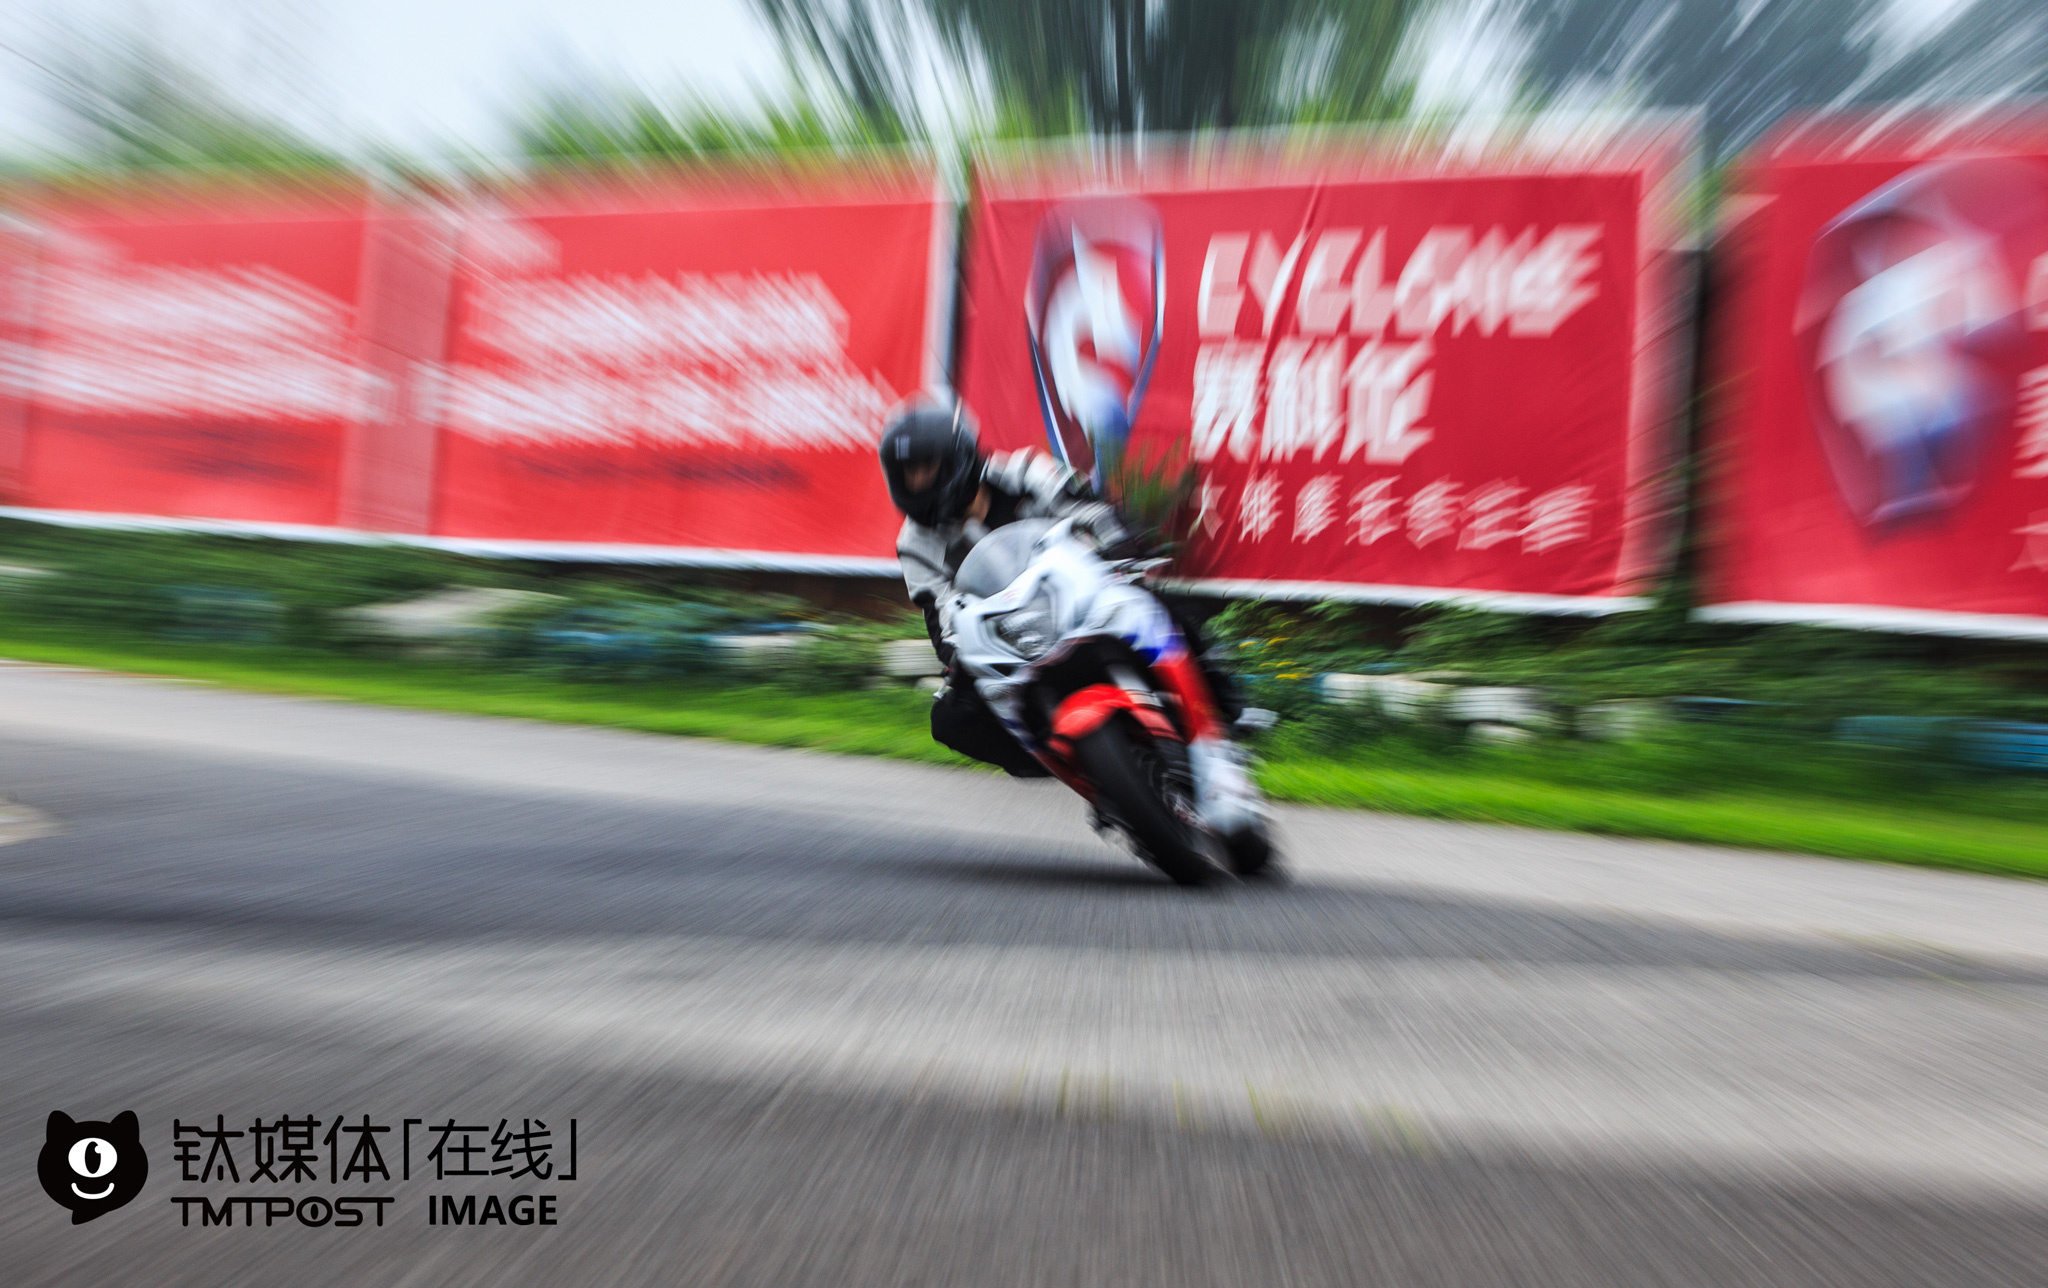 "On July, 30th, 2016, 30 motorcycle riders were attracted to a track test activity held by a Chinese motorcycle maker. The organizer charged every rider with merely 100 yuan. At present, there are only two race motorcycle circuits in Beijing. ""To purchase a new car in Beijing, you have to first draw a license plate lottery and get a plate. In comparison, it's more convenient to ride motorcycles, and you don't need to worry about traffic jam,"" a motorcycle rider told TMTpost, ""Motorcycles made by Chinese motorcycle makers are certainly less welcome in the Chinese market, but they still have a large market."" Statistics suggest that there are over 160 million race motorcycles and 30 million race motorcycle riders in China, and that the total transaction volume of second-hand motorcycles is over 6 million yuan (over $ 900,000)."